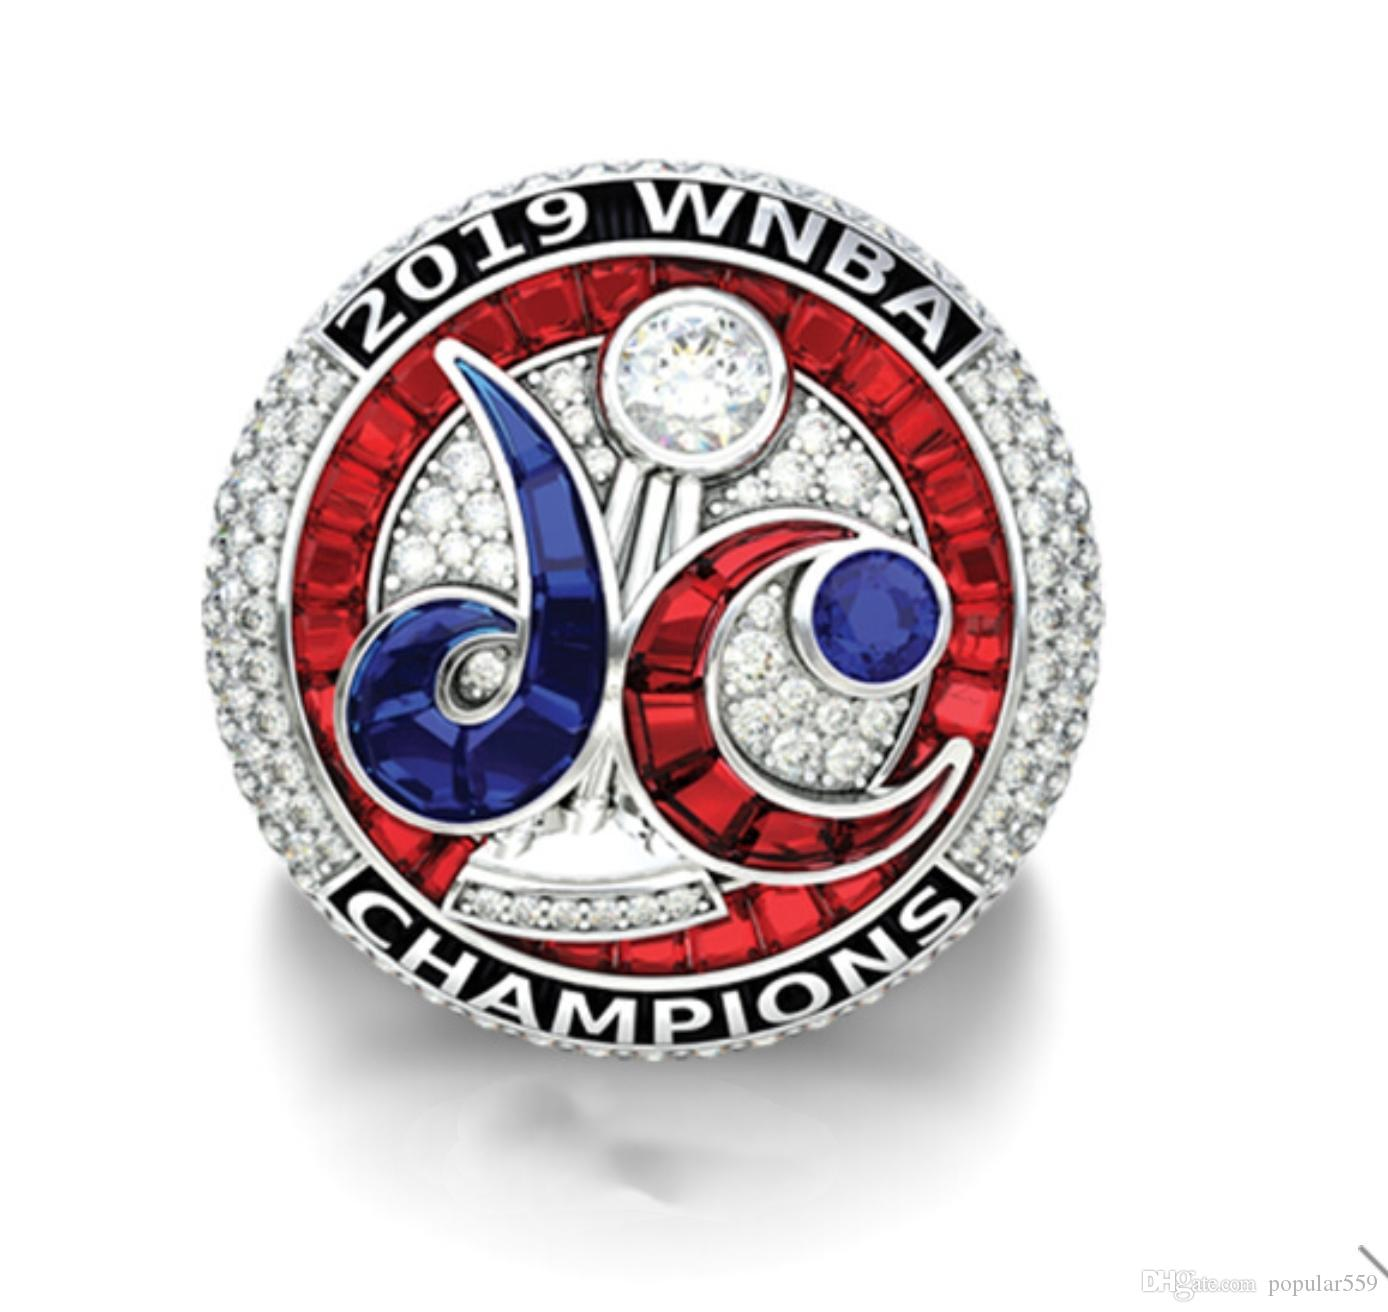 2020 wholesale Washington Mystics 2019-2020 Championship Ring TideHoliday gifts for friends